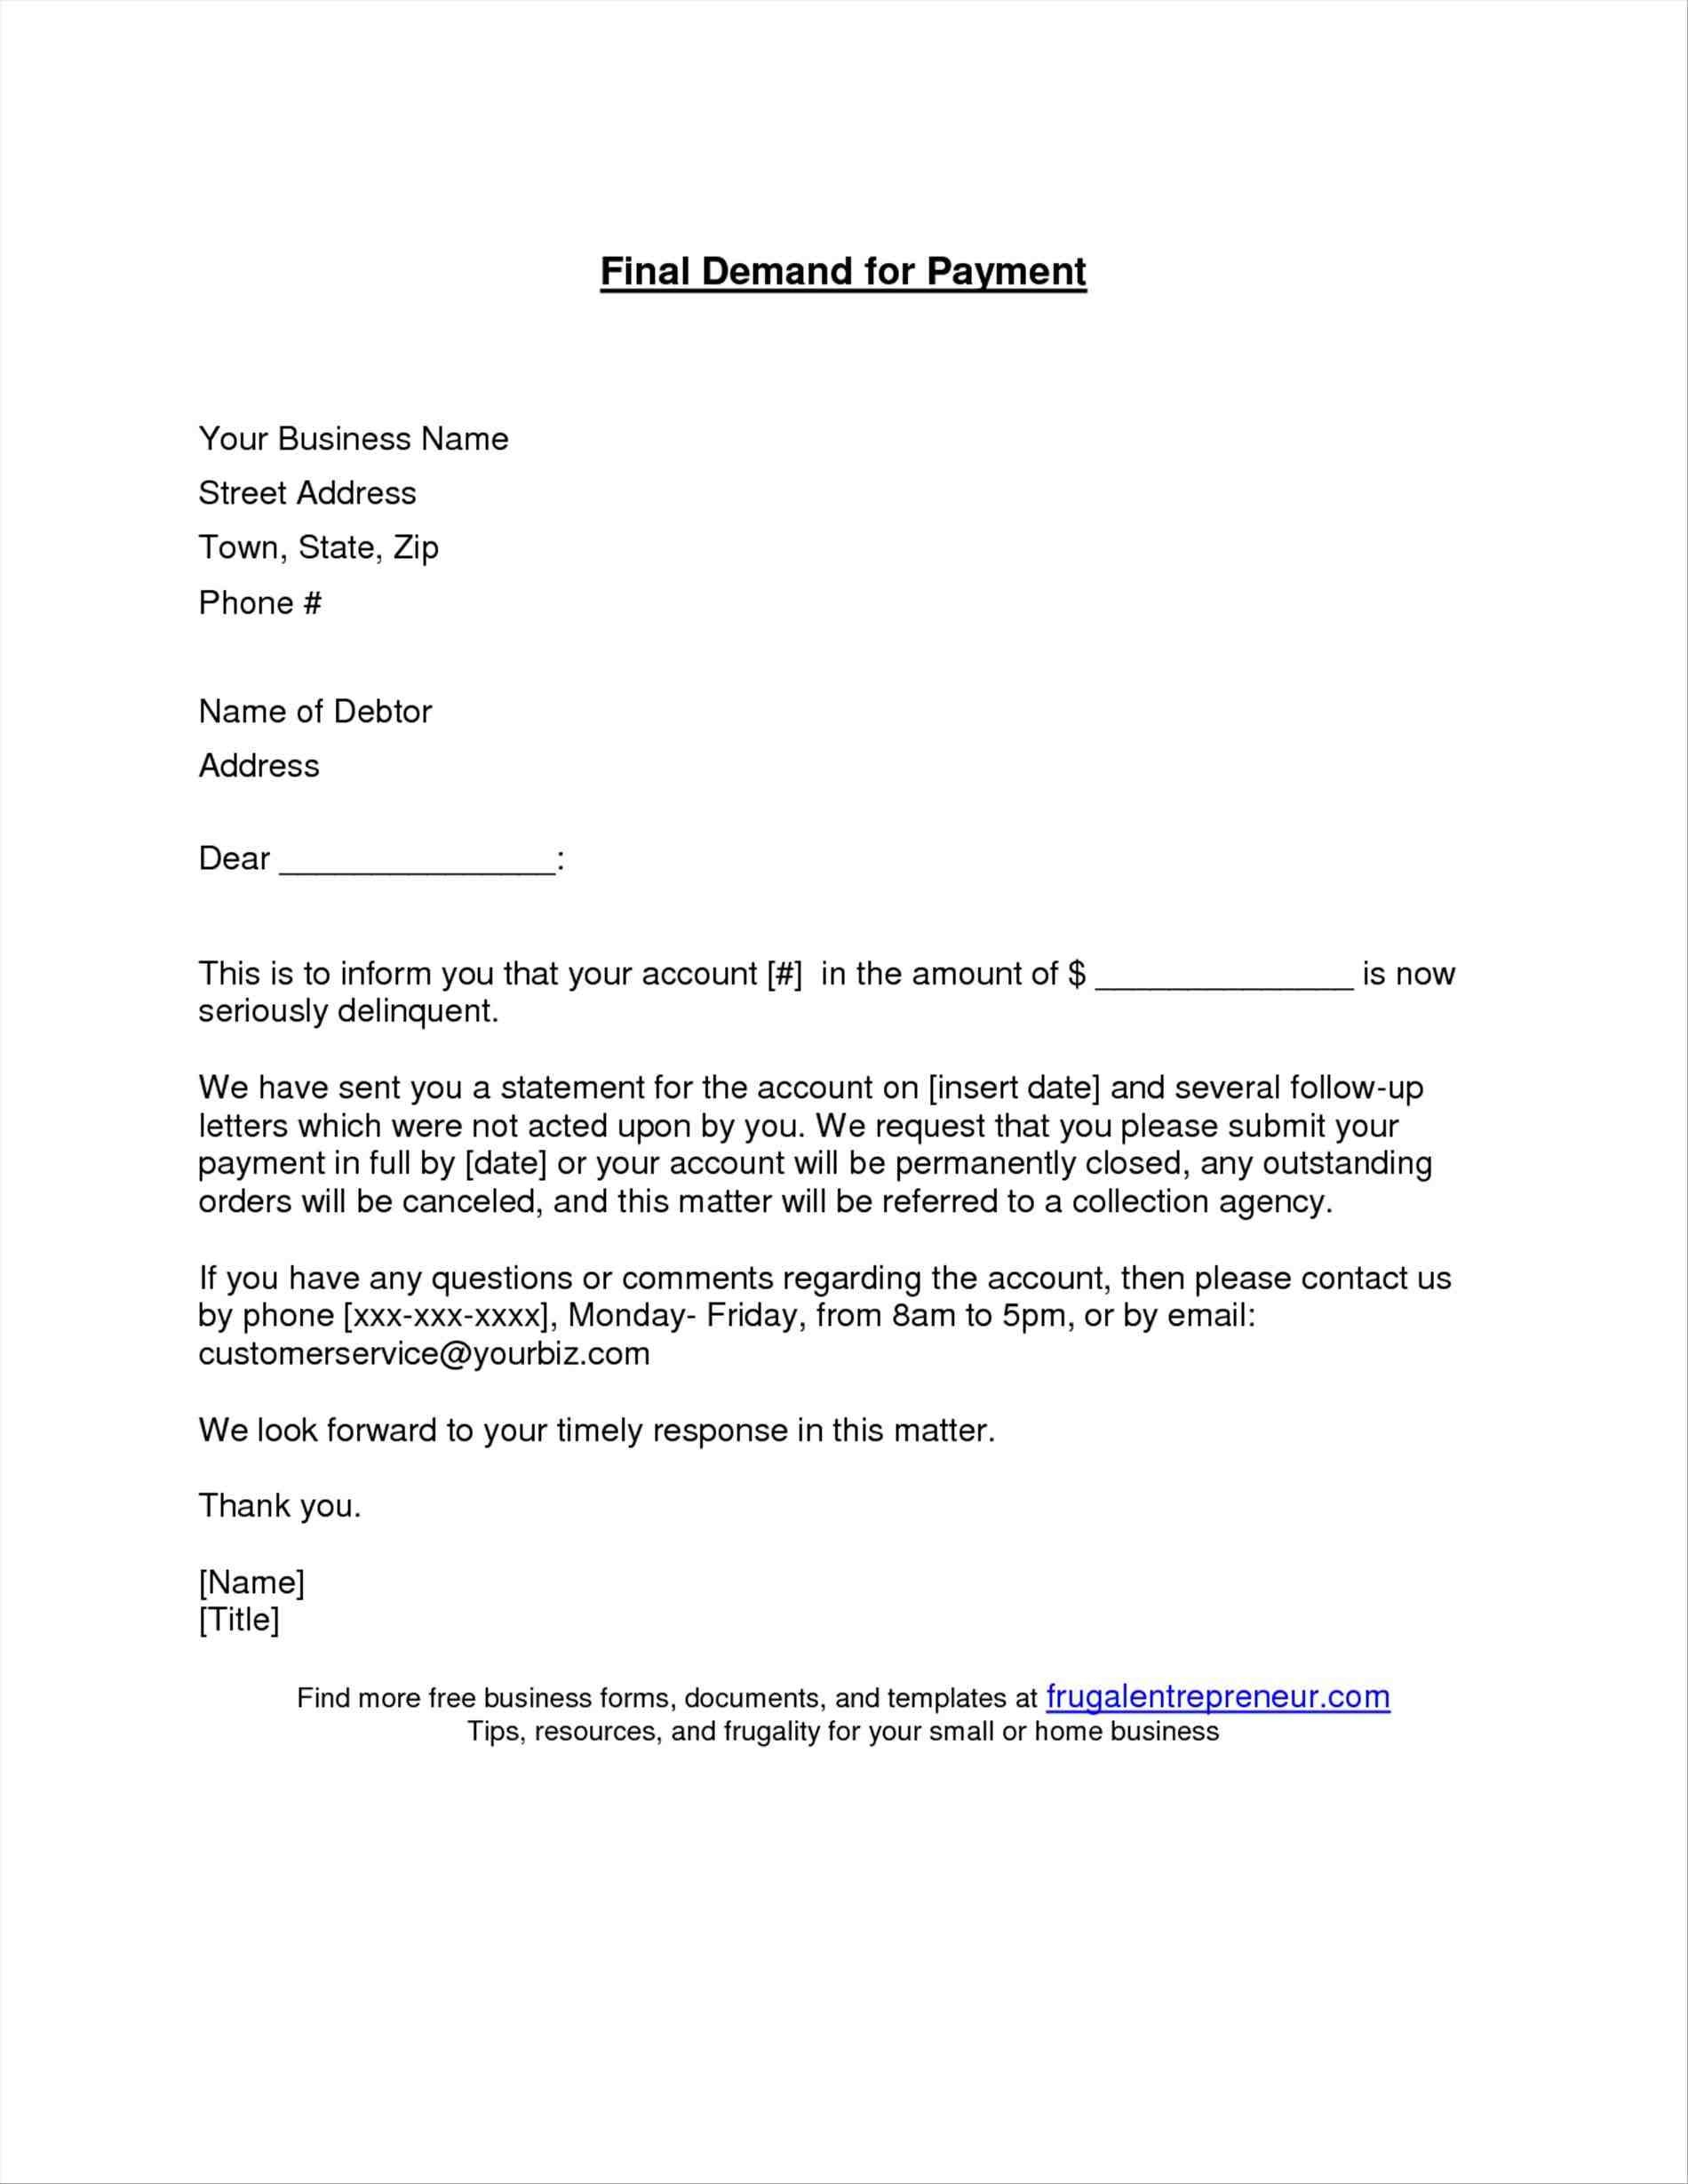 Free Demand Letter Template - Demand for Payment Letter Template Ideas